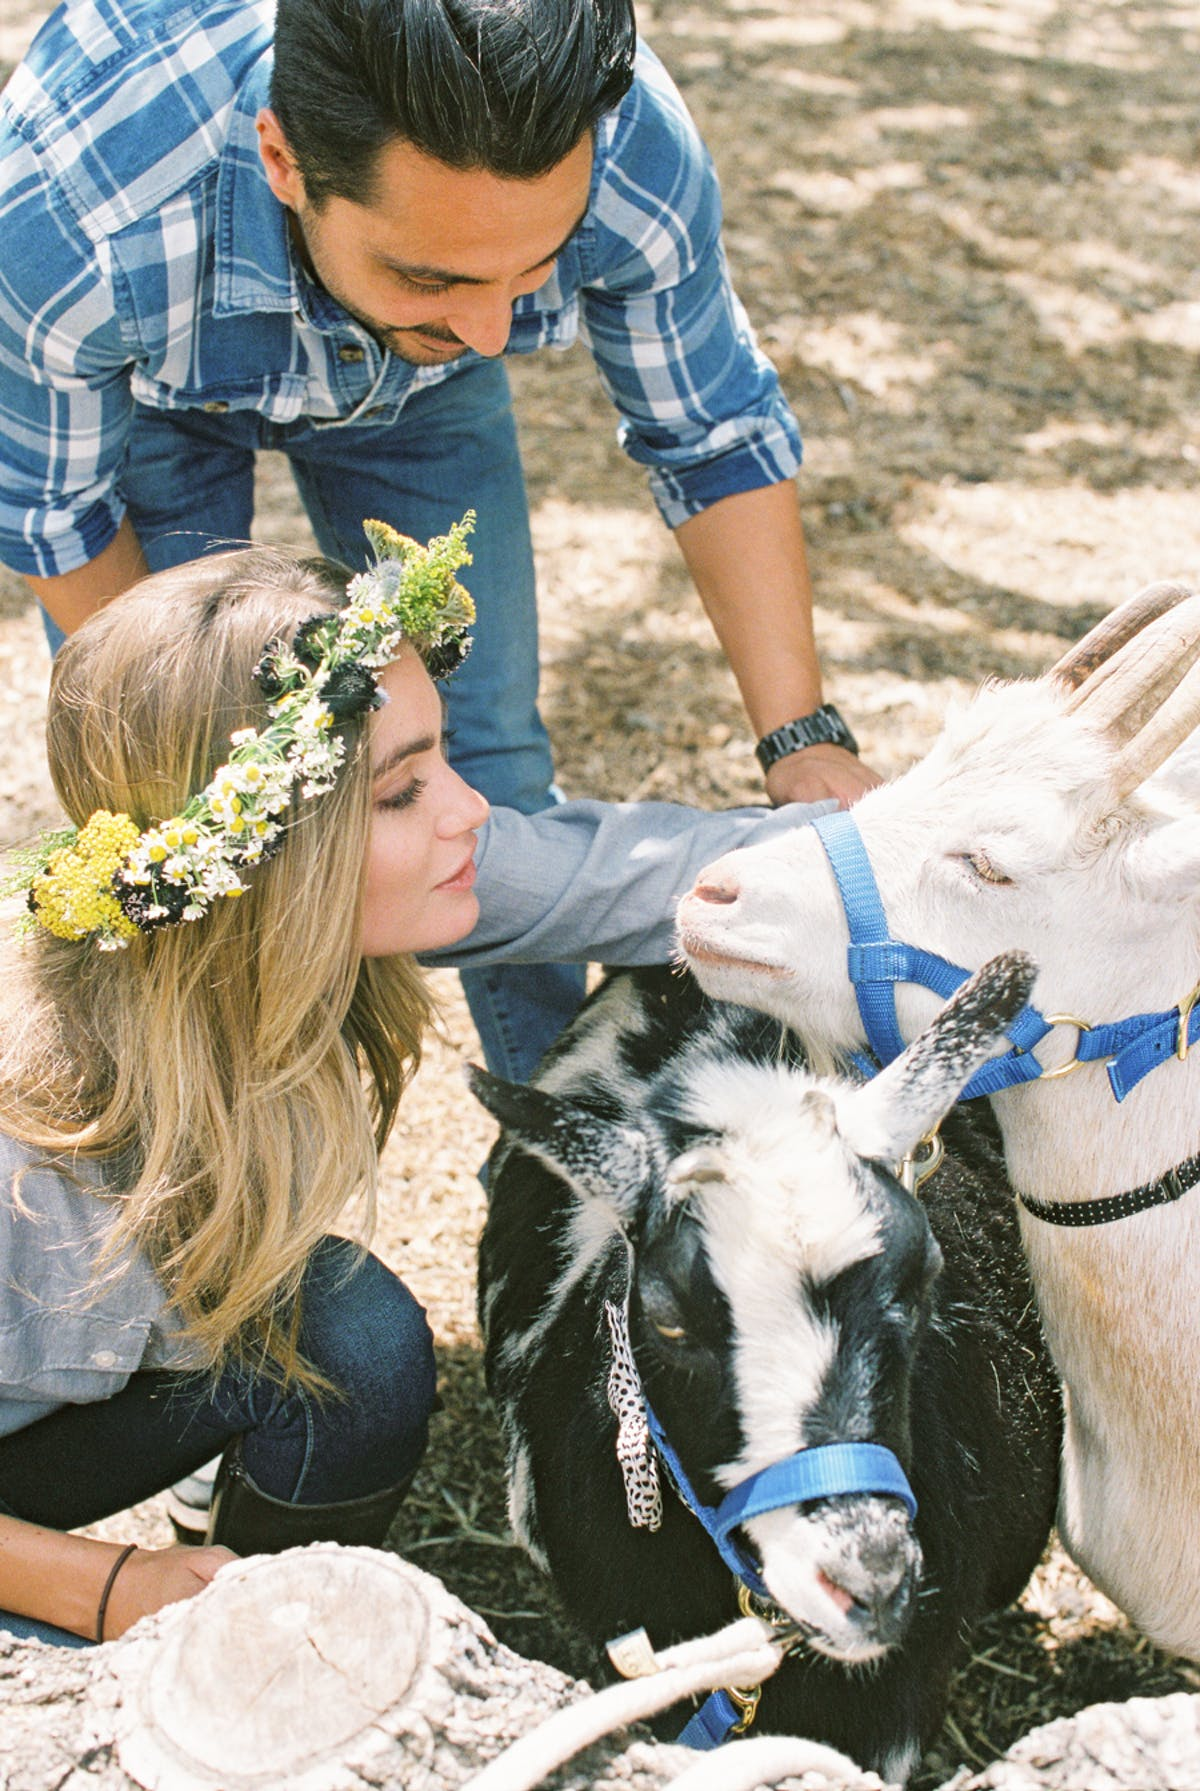 www.santabarbarawedding.com | Michael + Anna Costa Photography | Refugio Ranch | Alegria by Design | Like a Letter Videography | Anna Le Pley Taylor | The Farm Stead | Couple with the Goats